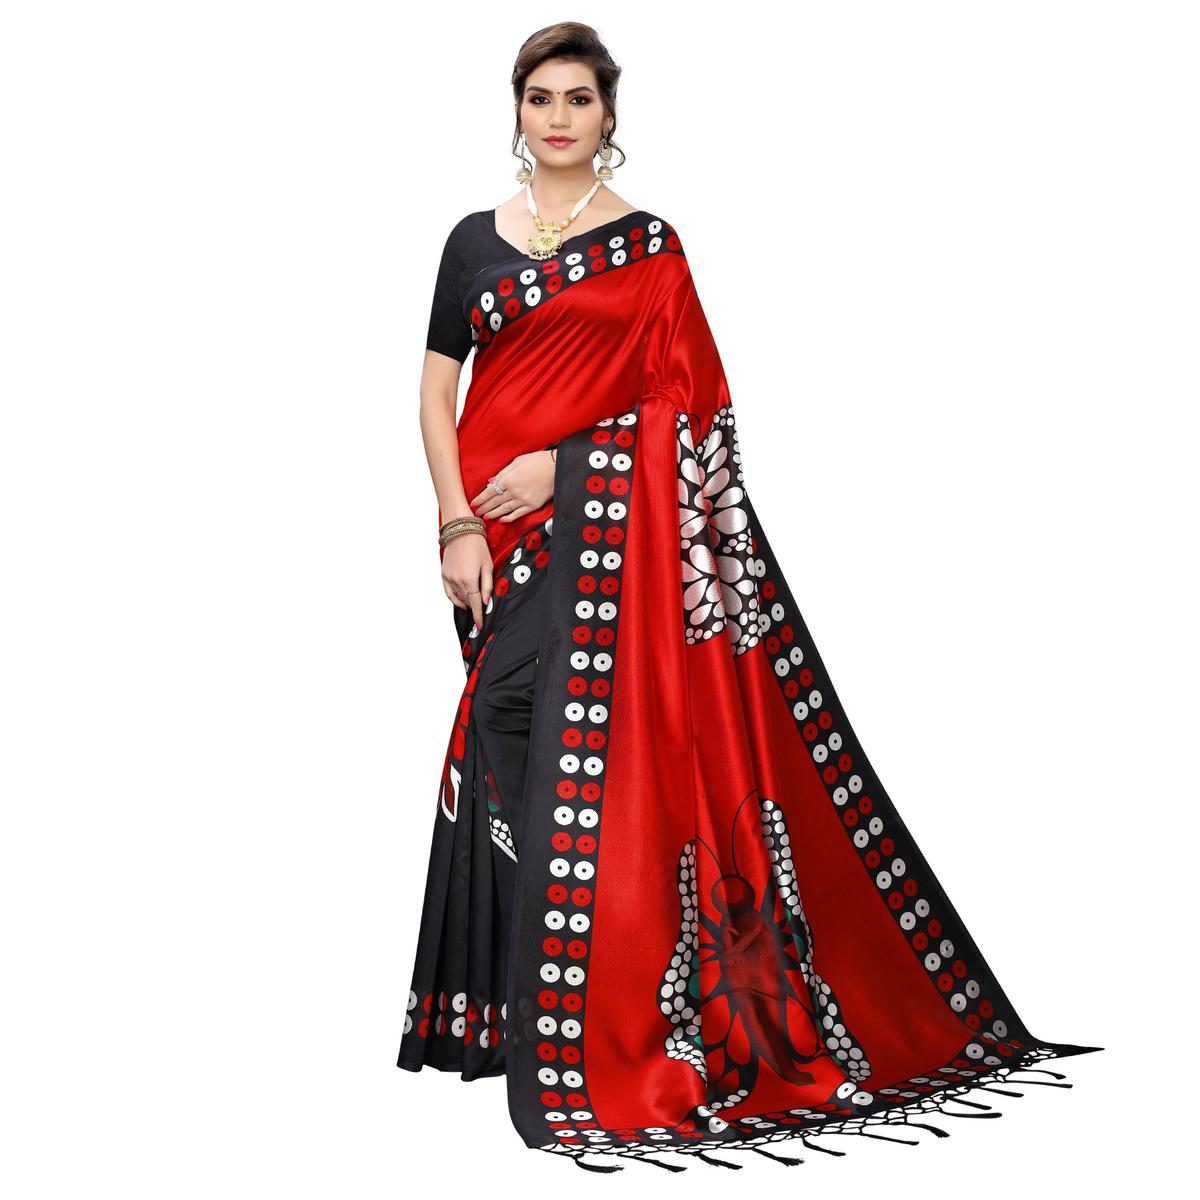 Exotic Black-Red Colored Festive Wear Butterfly Printed Art Silk Saree With Tassels